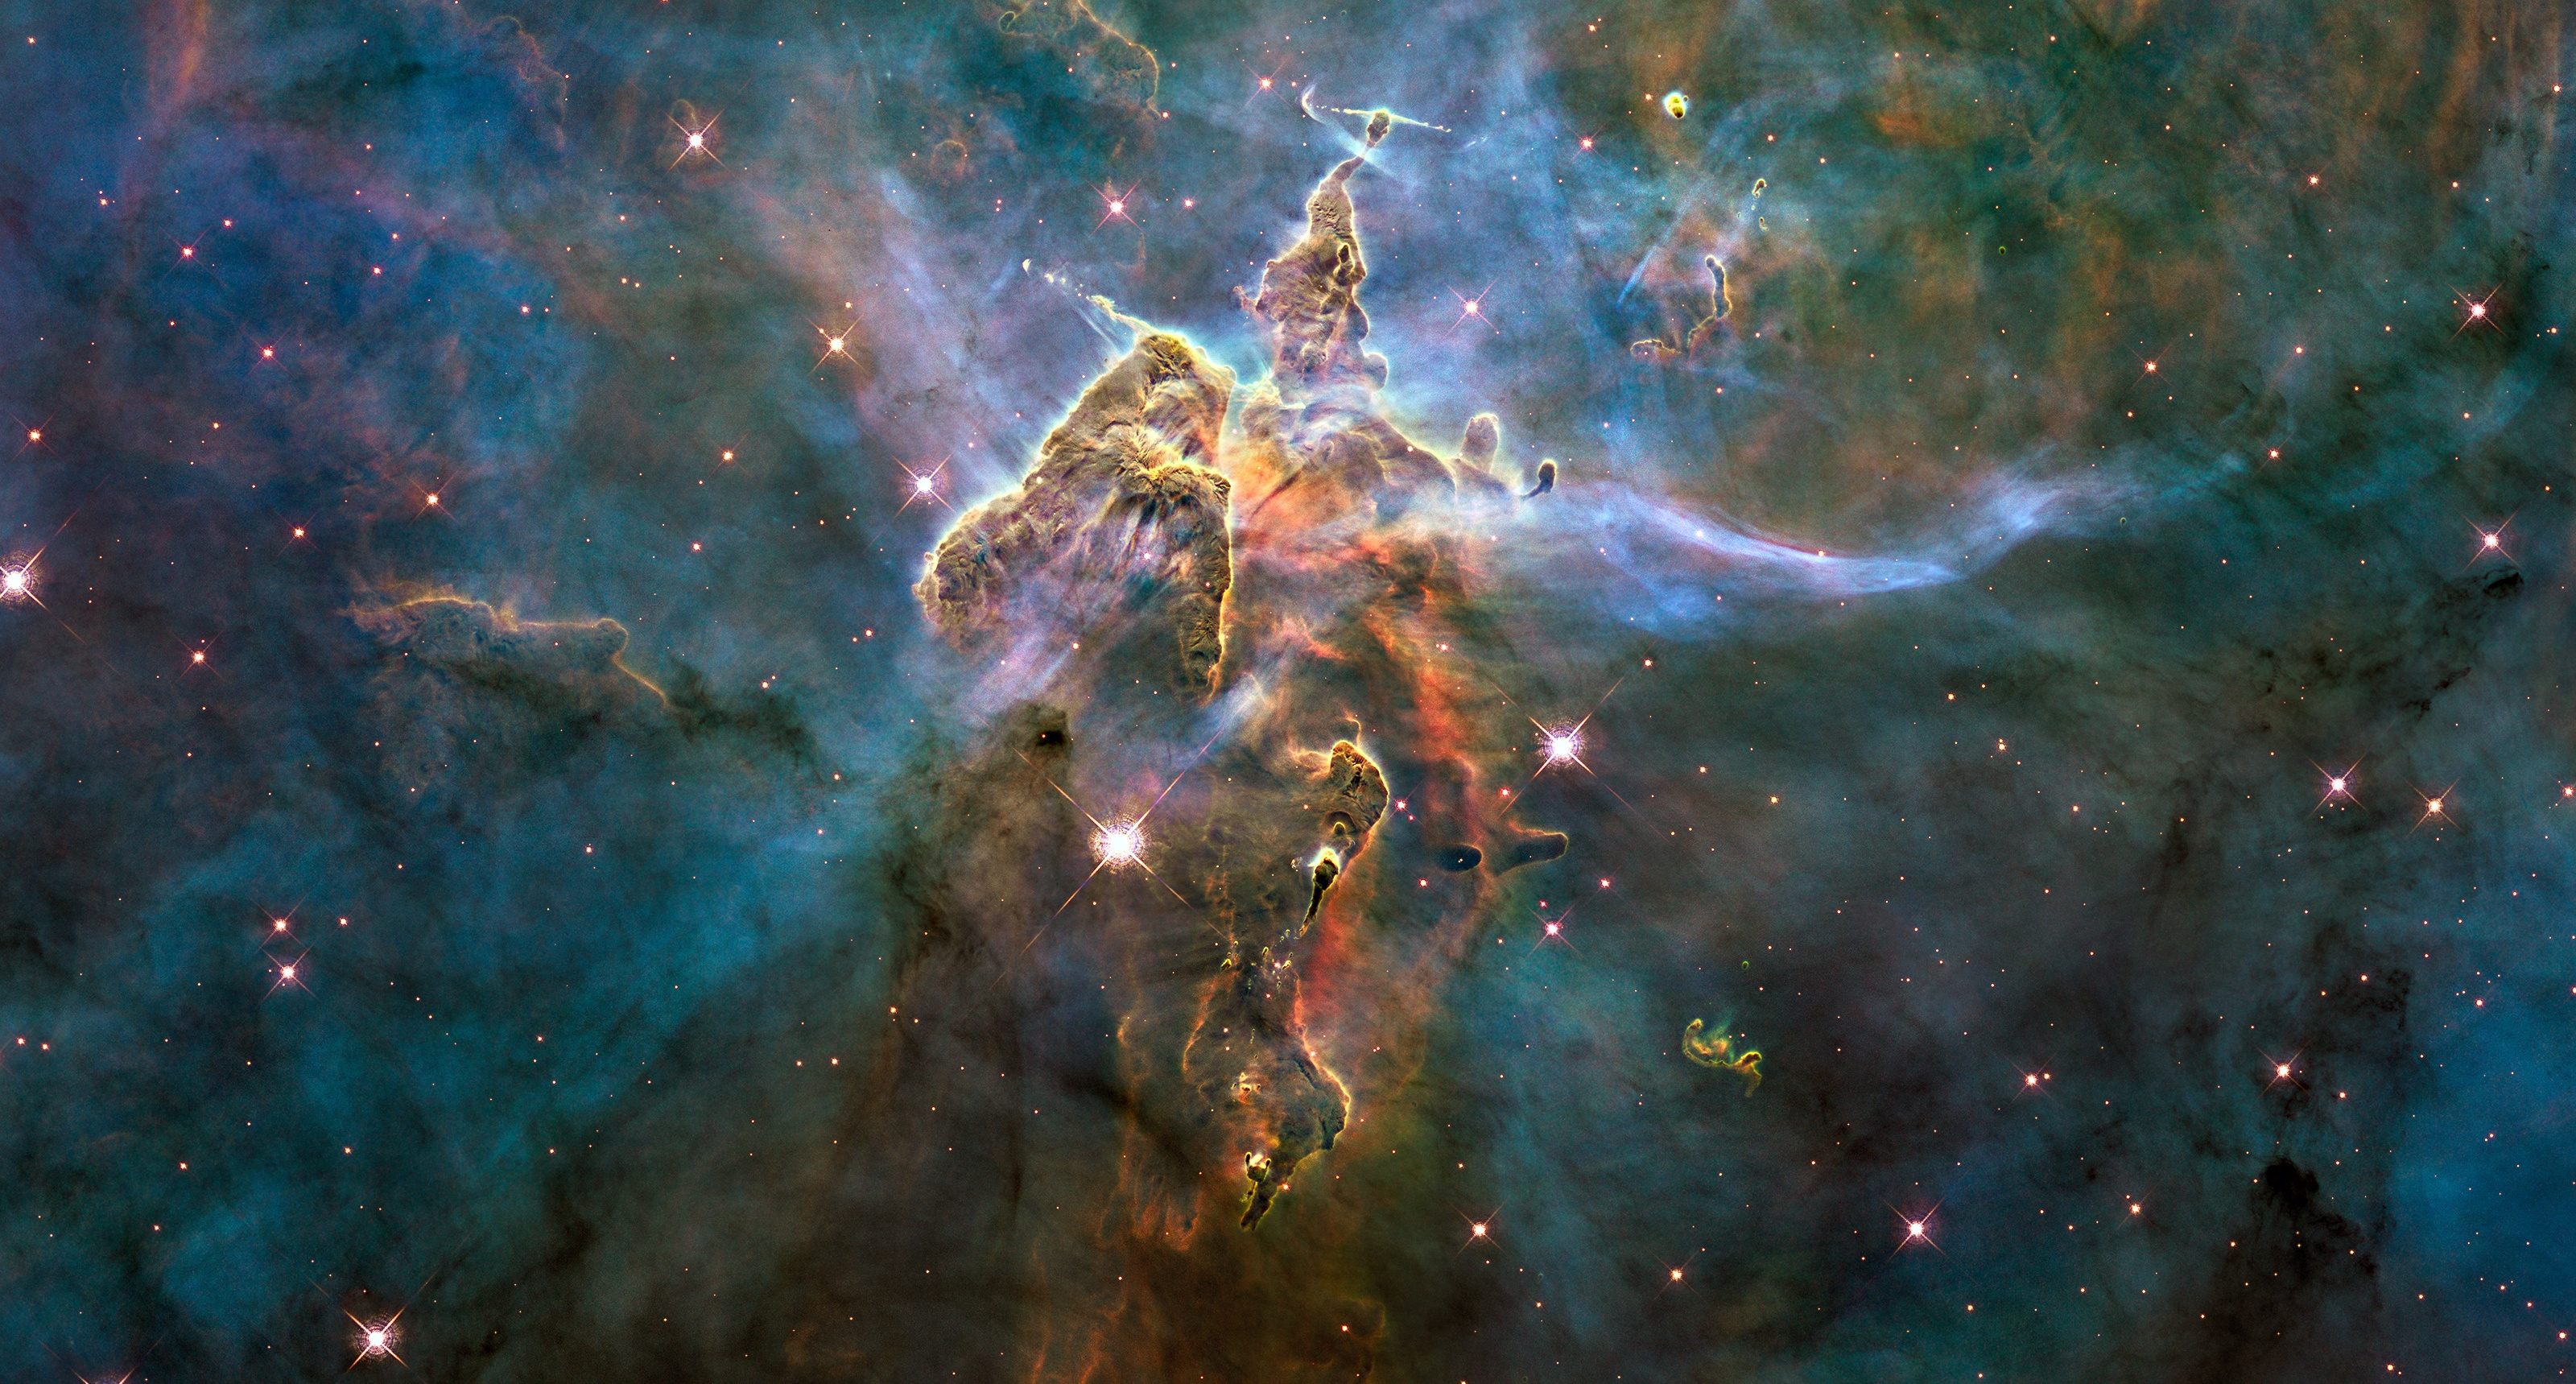 2013-09-21-Picture_by_Hubble_Space_Telescope_crop.jpg